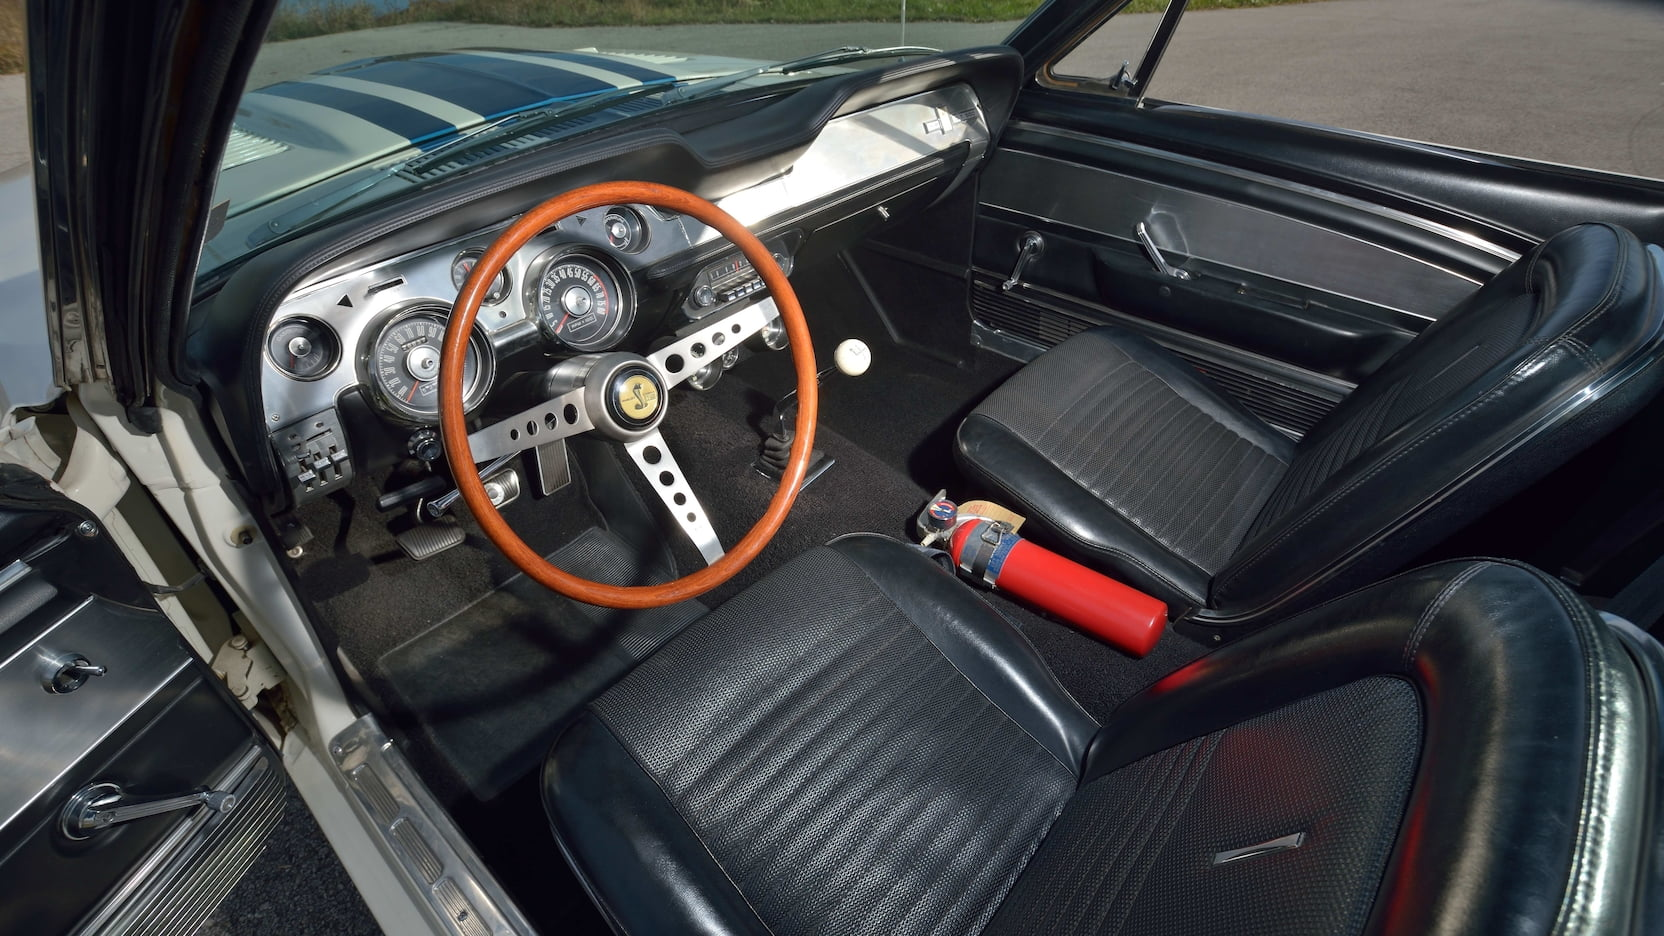 1967 Shelby GT500 Super Snake interior